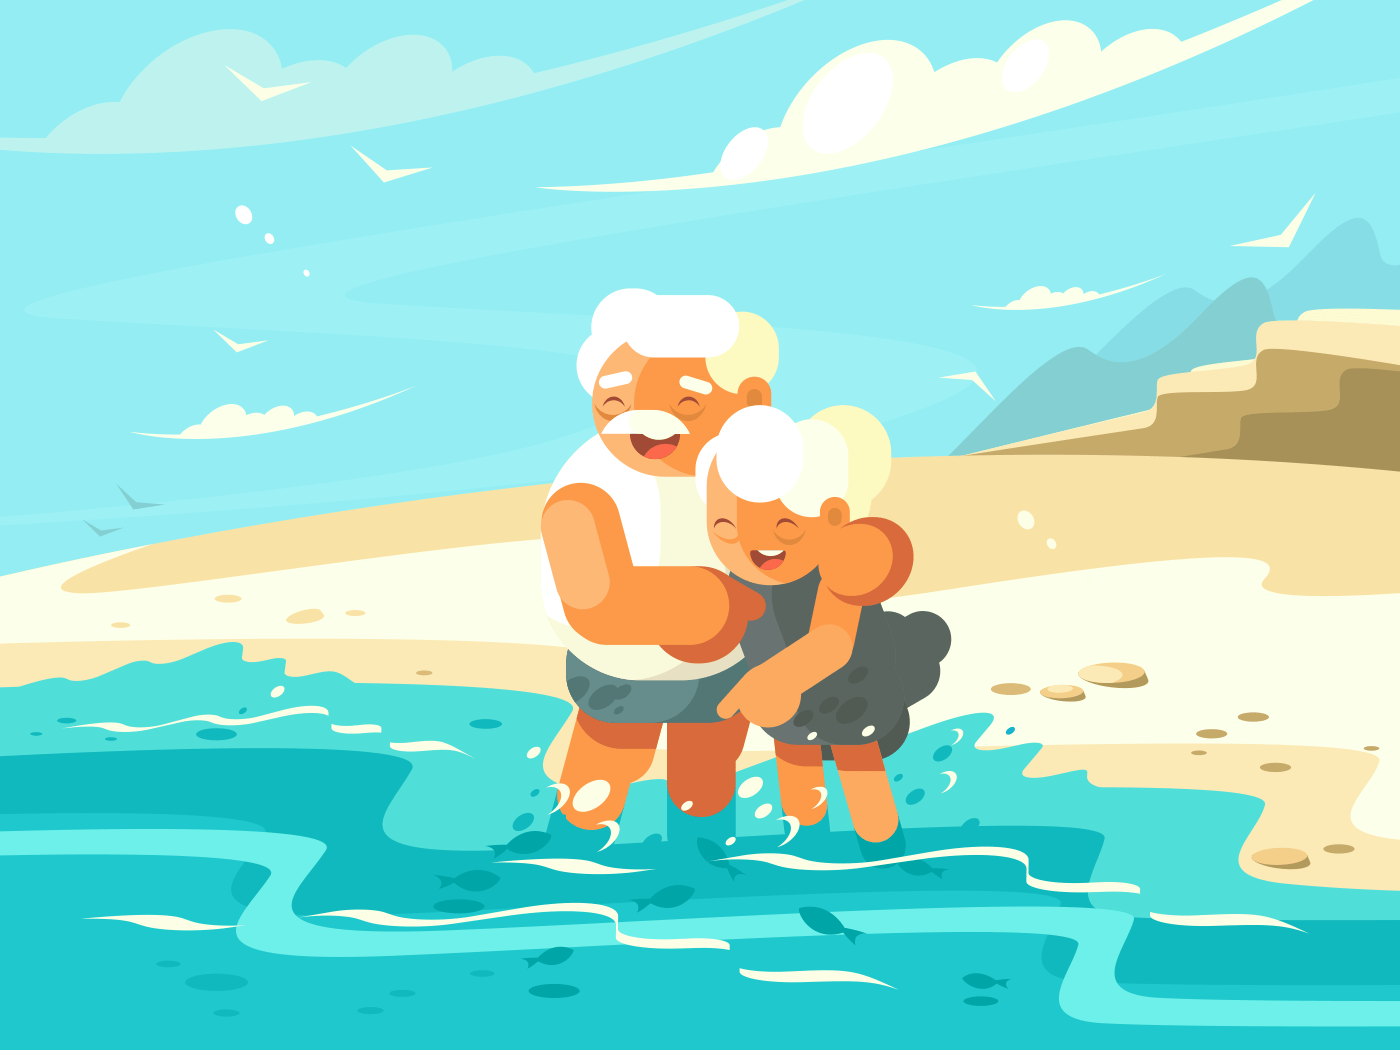 Mature couple in love embraced on shore of ocean. Vector illustration